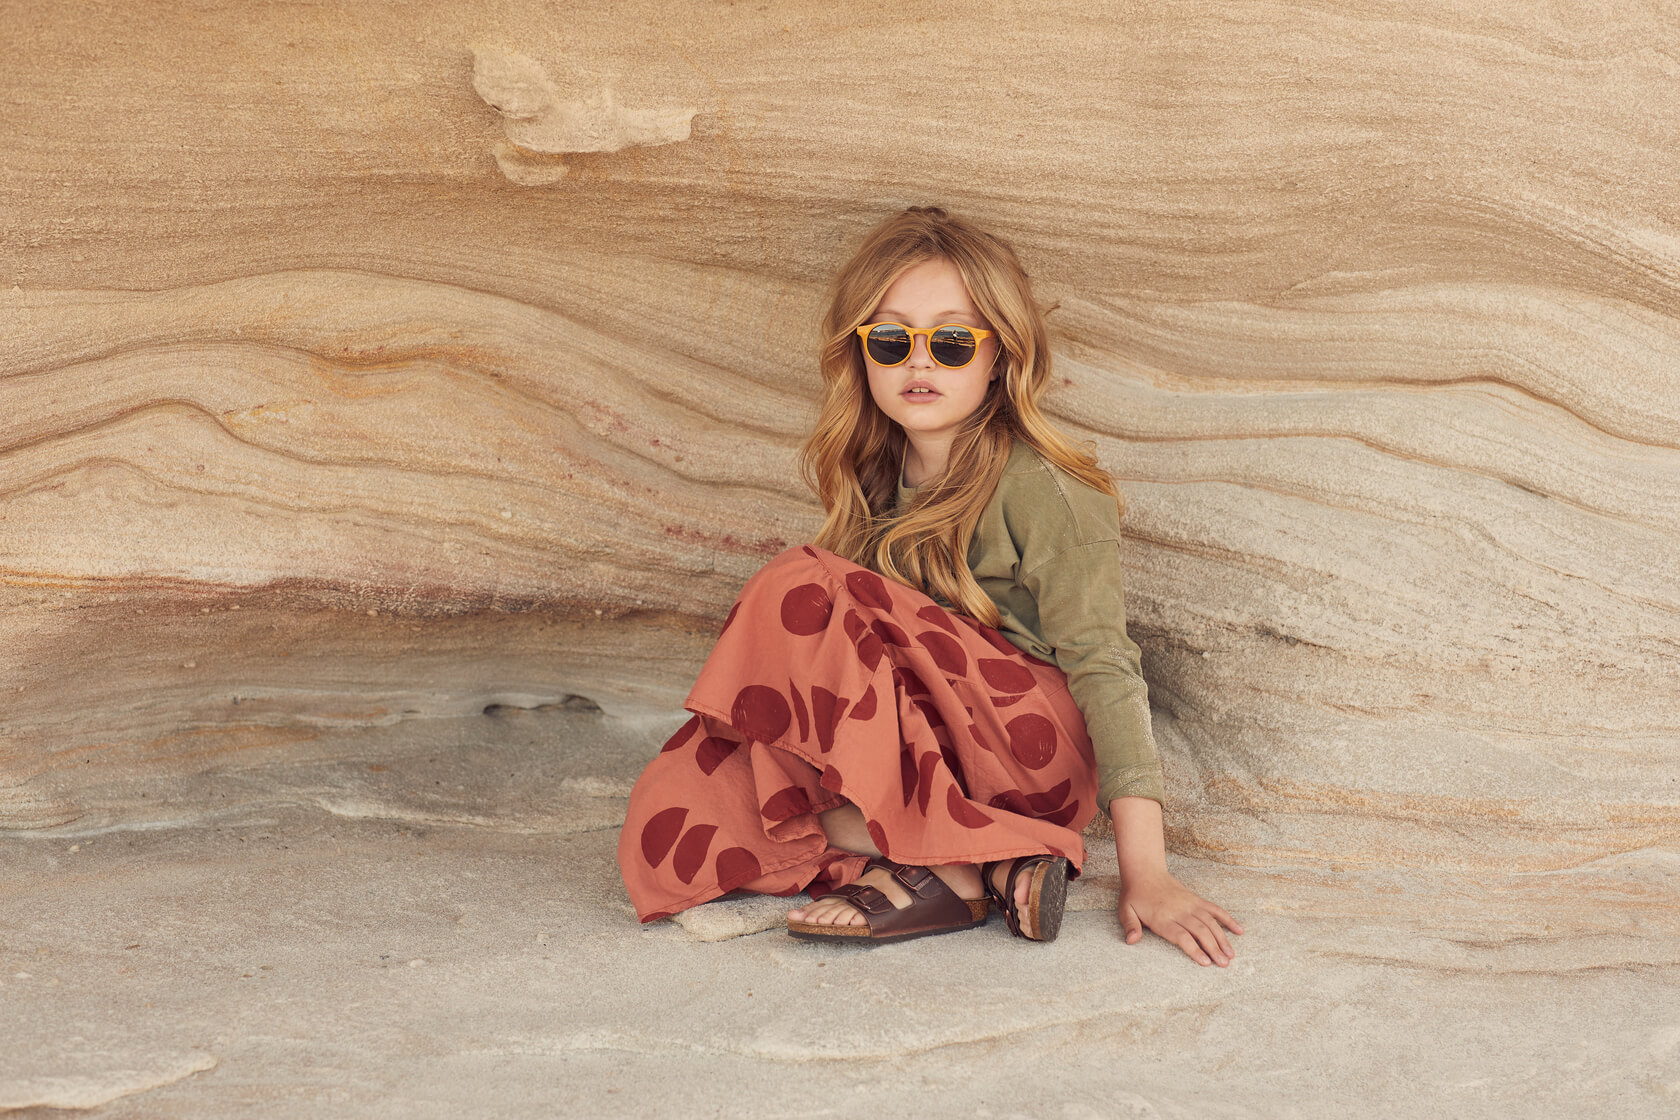 goose and dust kids fashion editorial